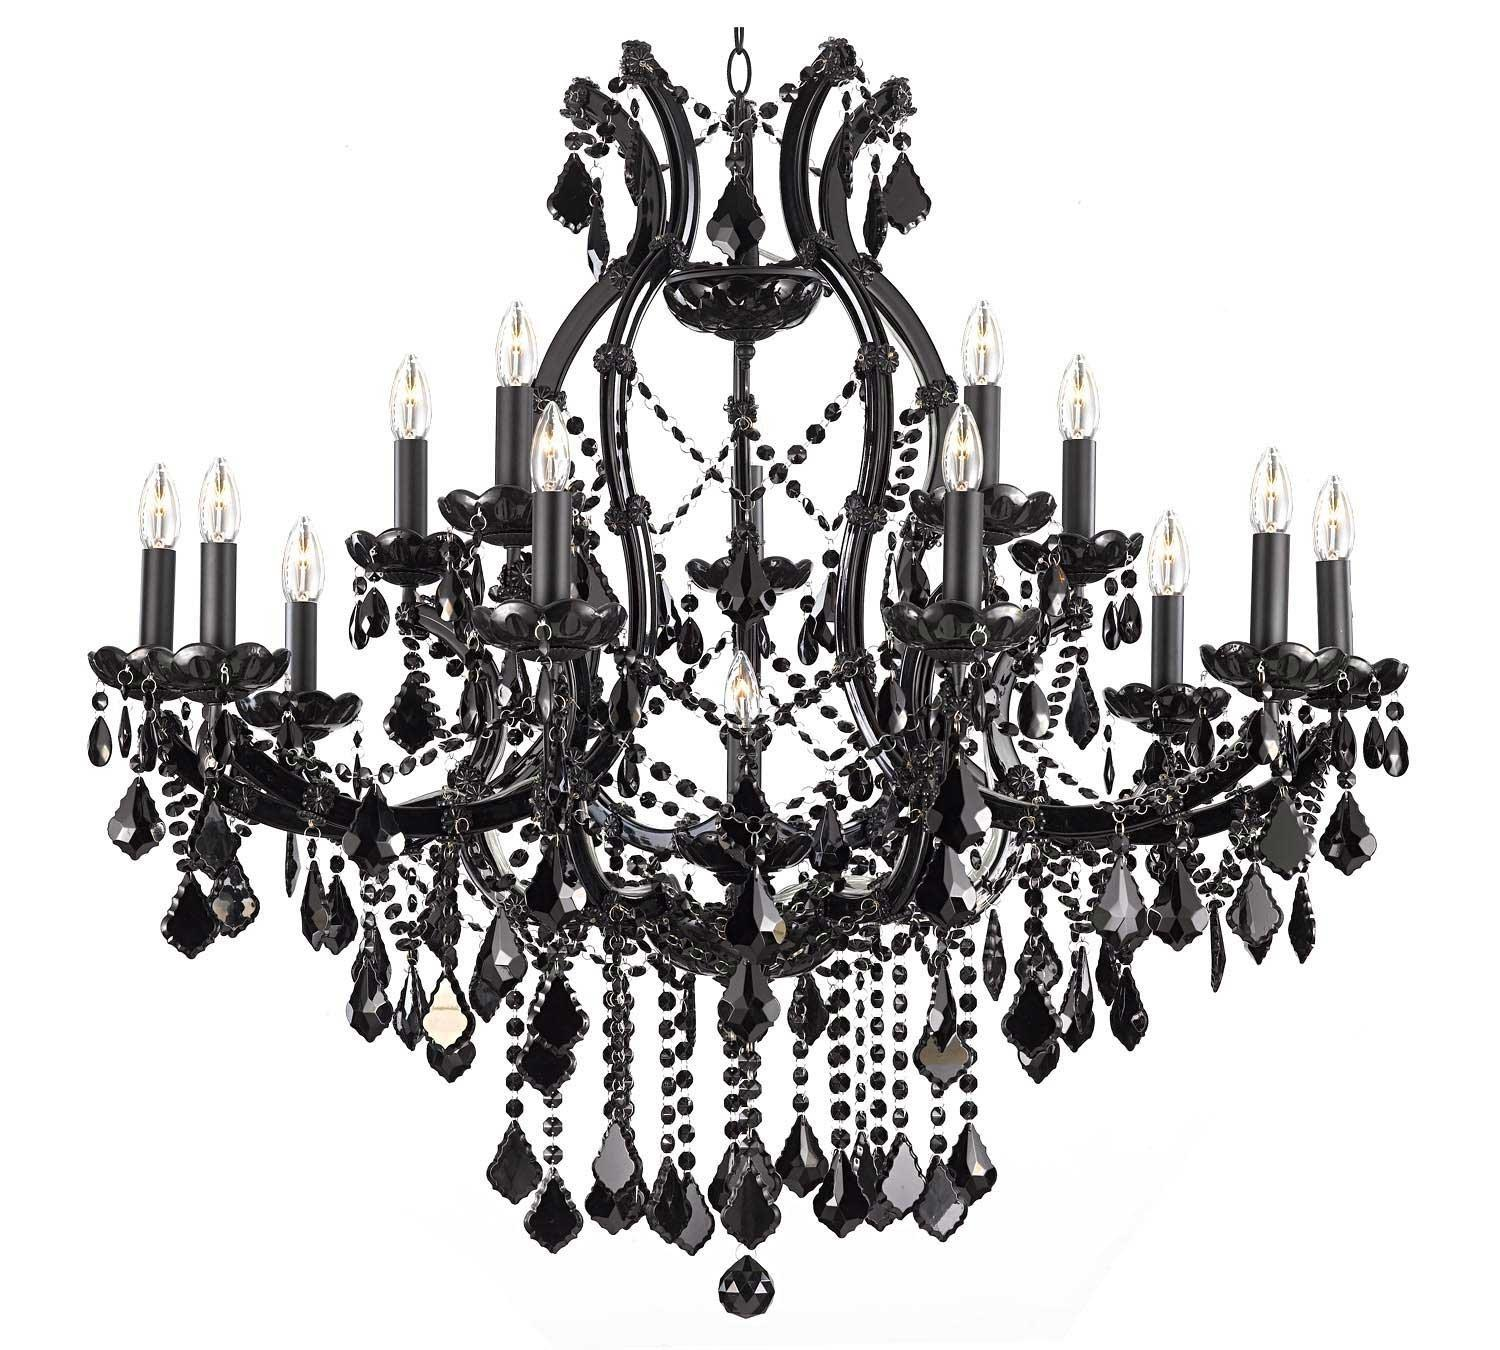 Jet BlackChandelier Lighting Crystal With 16 Lights H37x W38